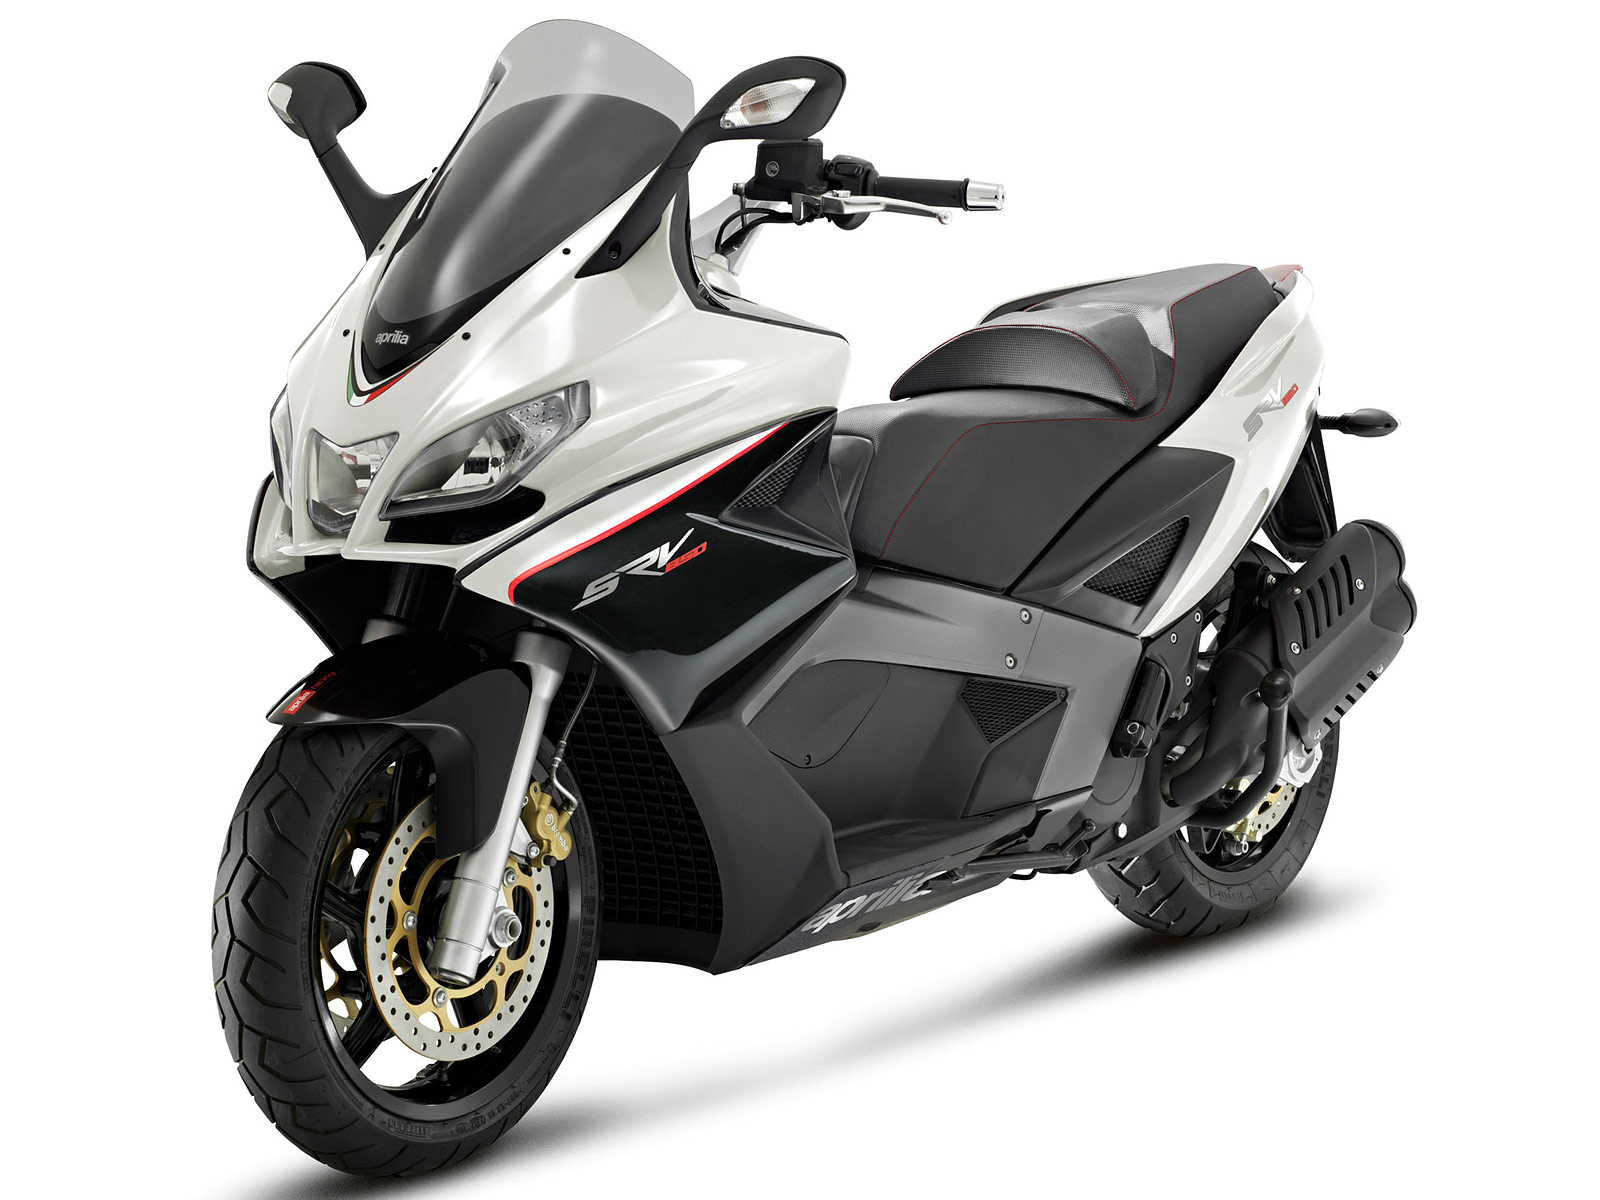 2012 aprilia srv850 scooter pictures. Black Bedroom Furniture Sets. Home Design Ideas